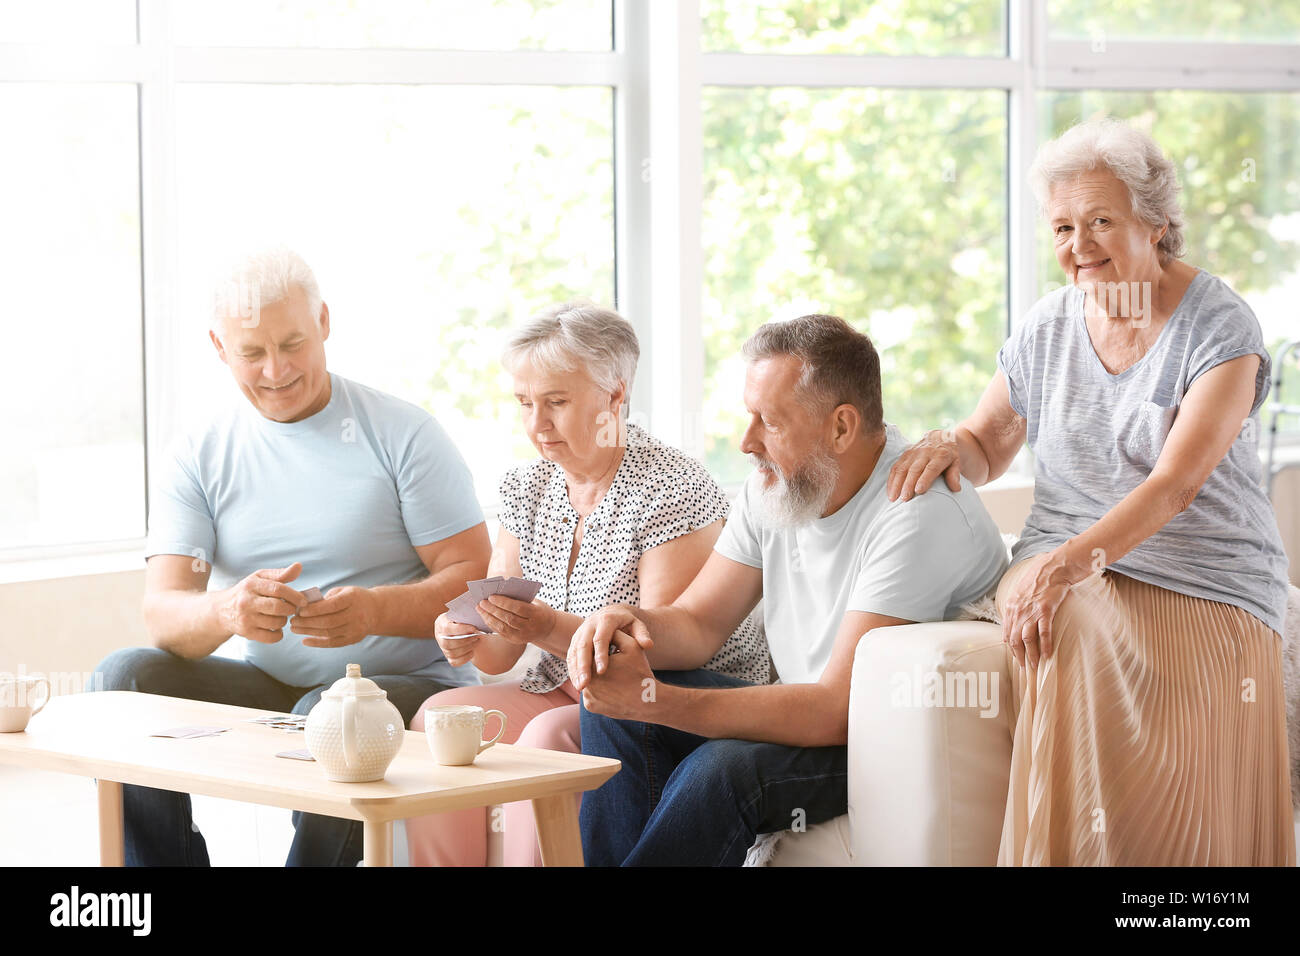 Portrait Of Elderly People Playing Cards In Nursing Home Stock Photo Alamy